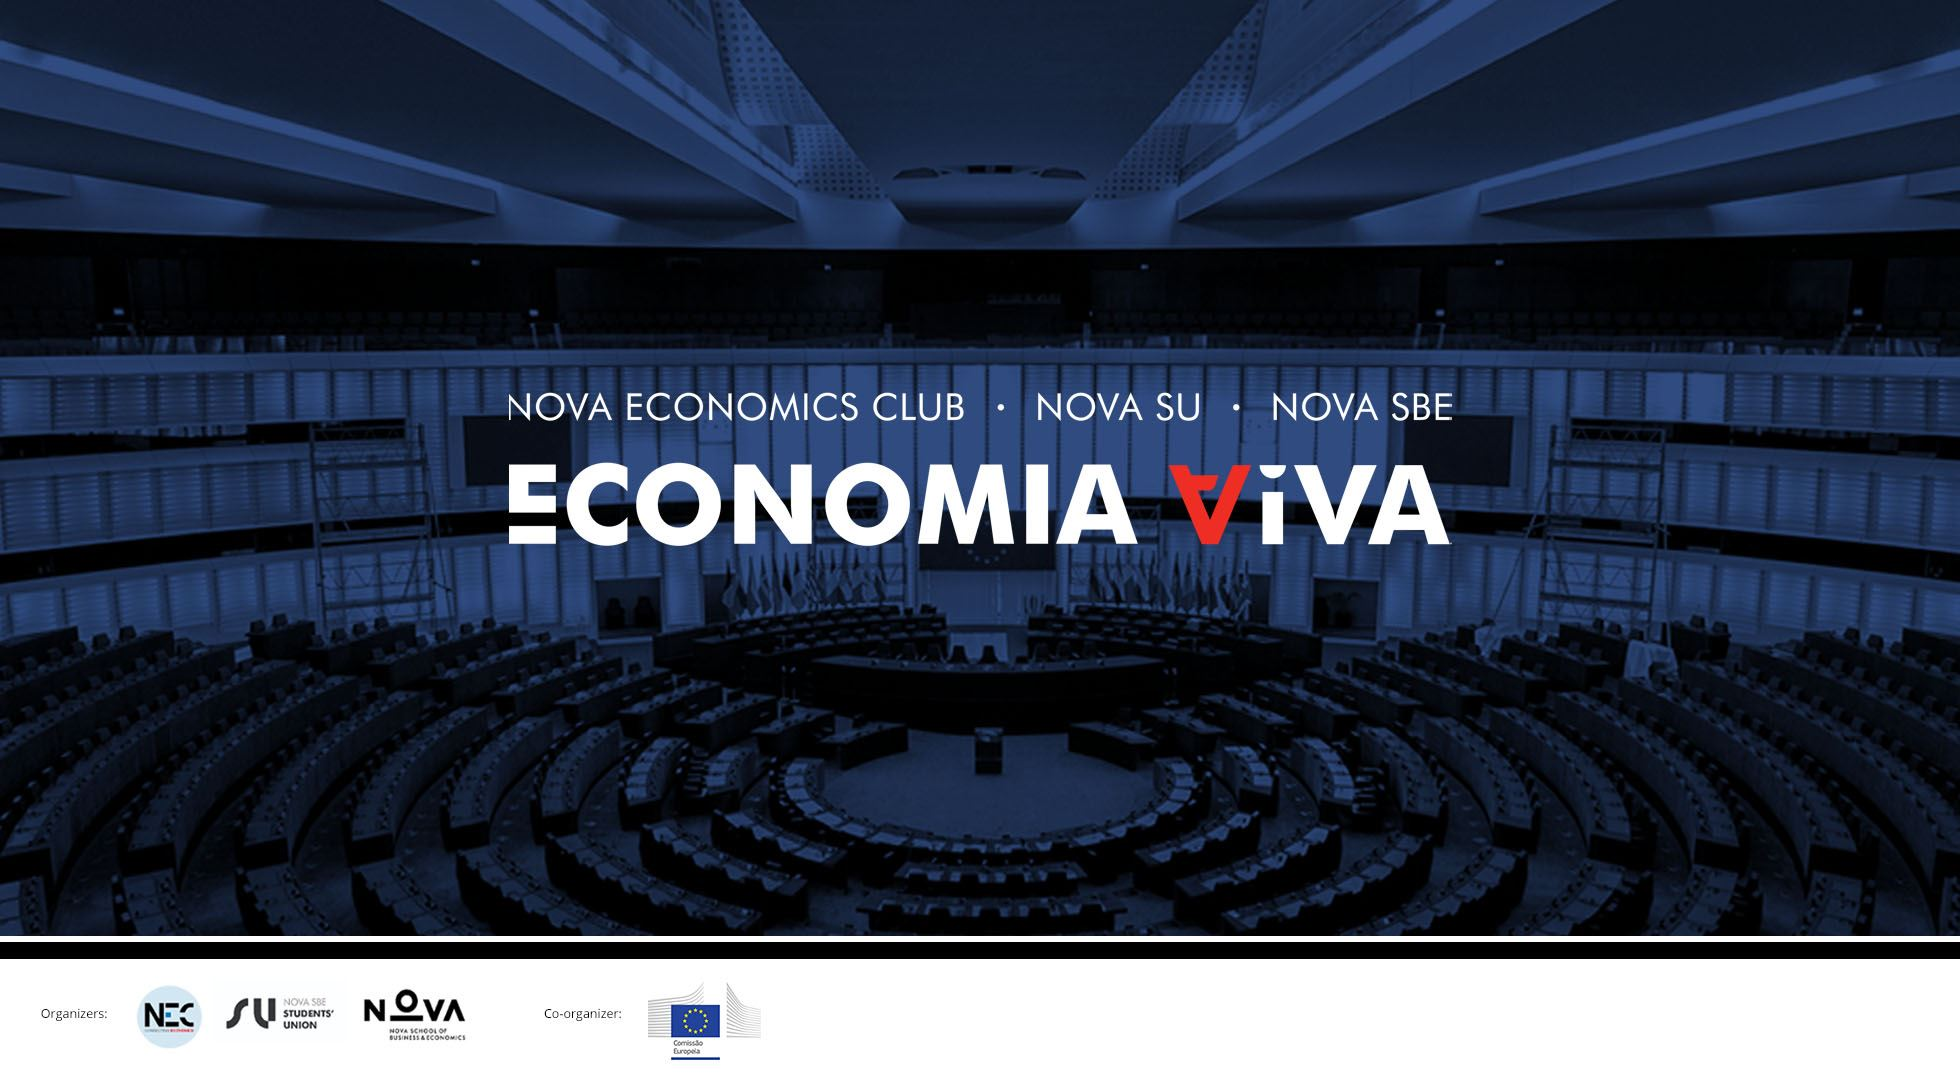 Economia Viva' 20 at Nova SBE in Carcavelos